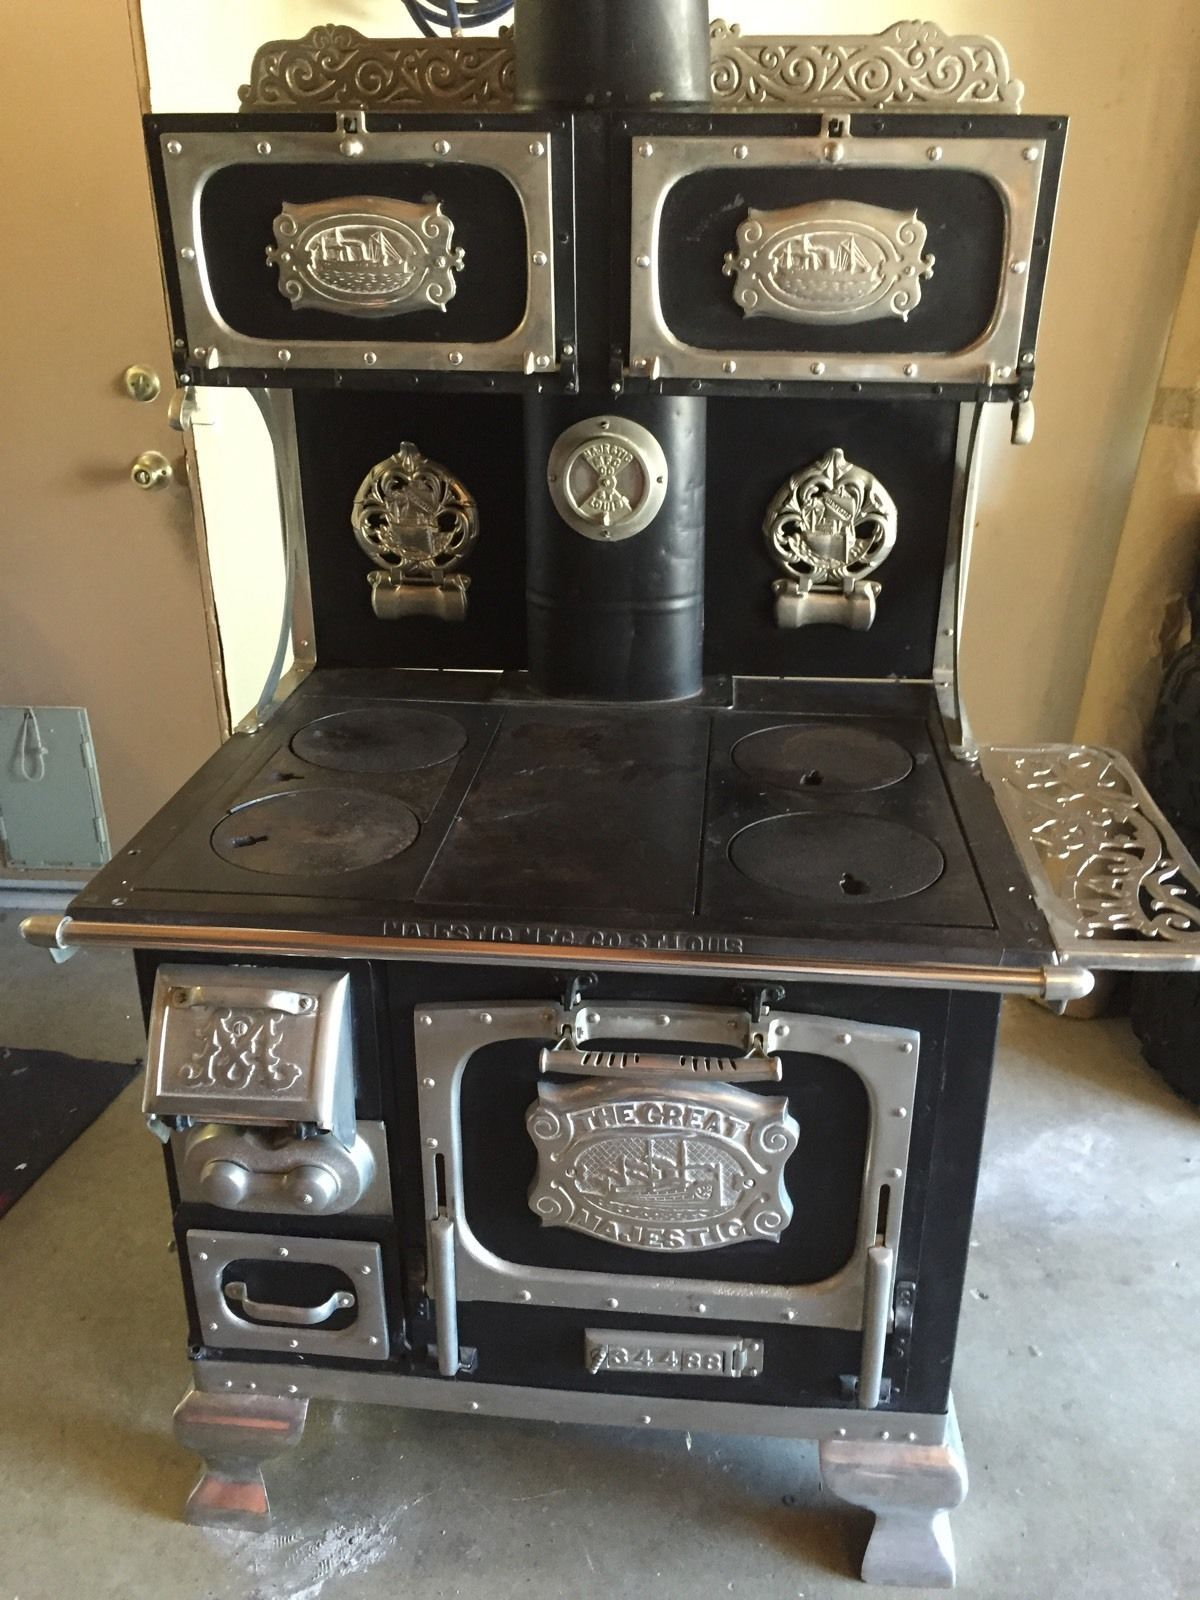 great majestic wood burning stove antique cook top oven restored